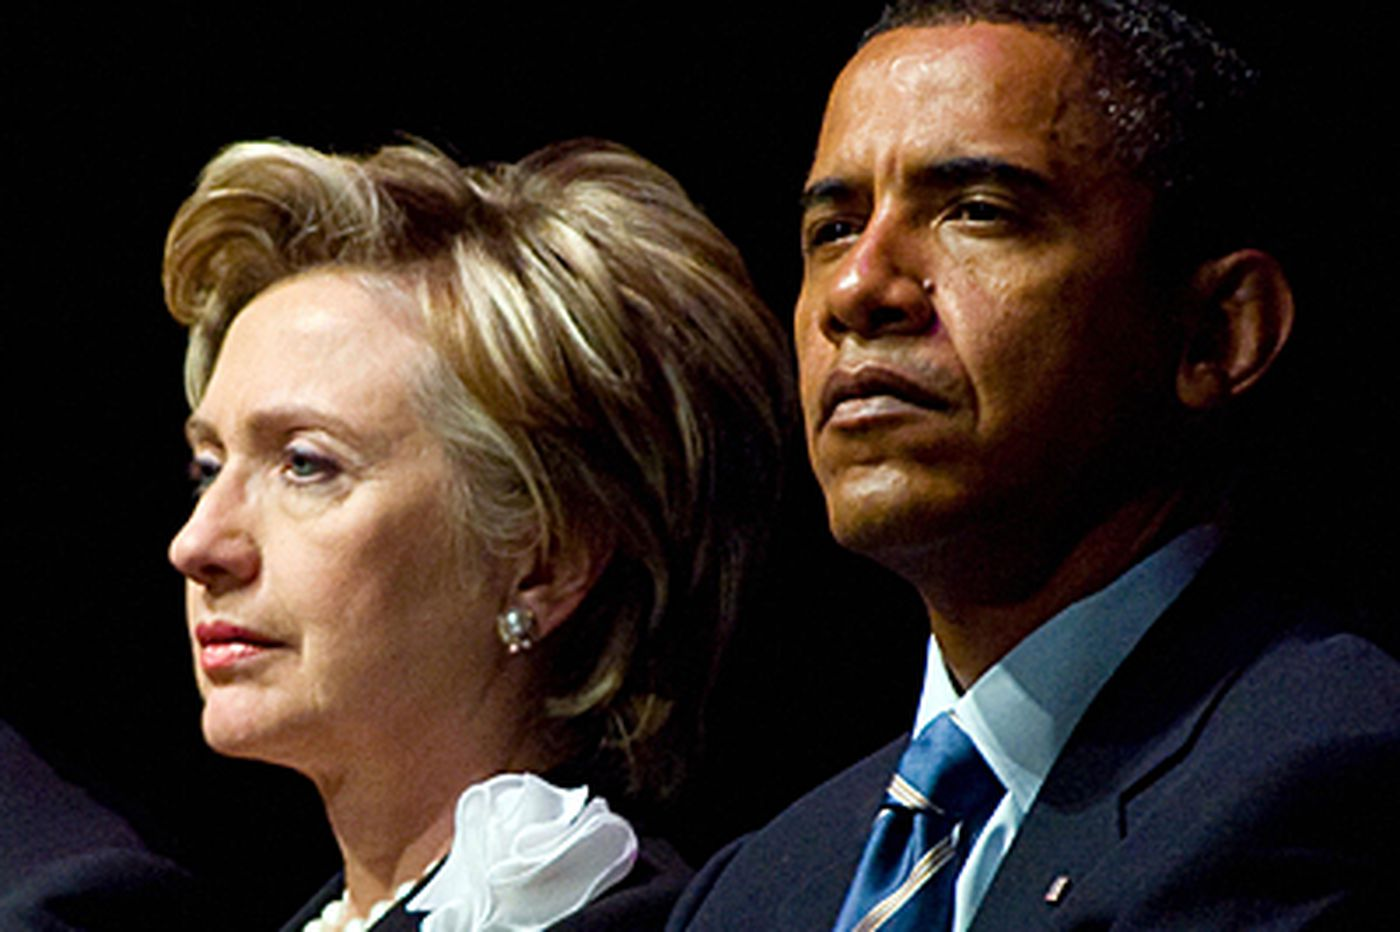 Jill Porter: Obama should have picked Hillary